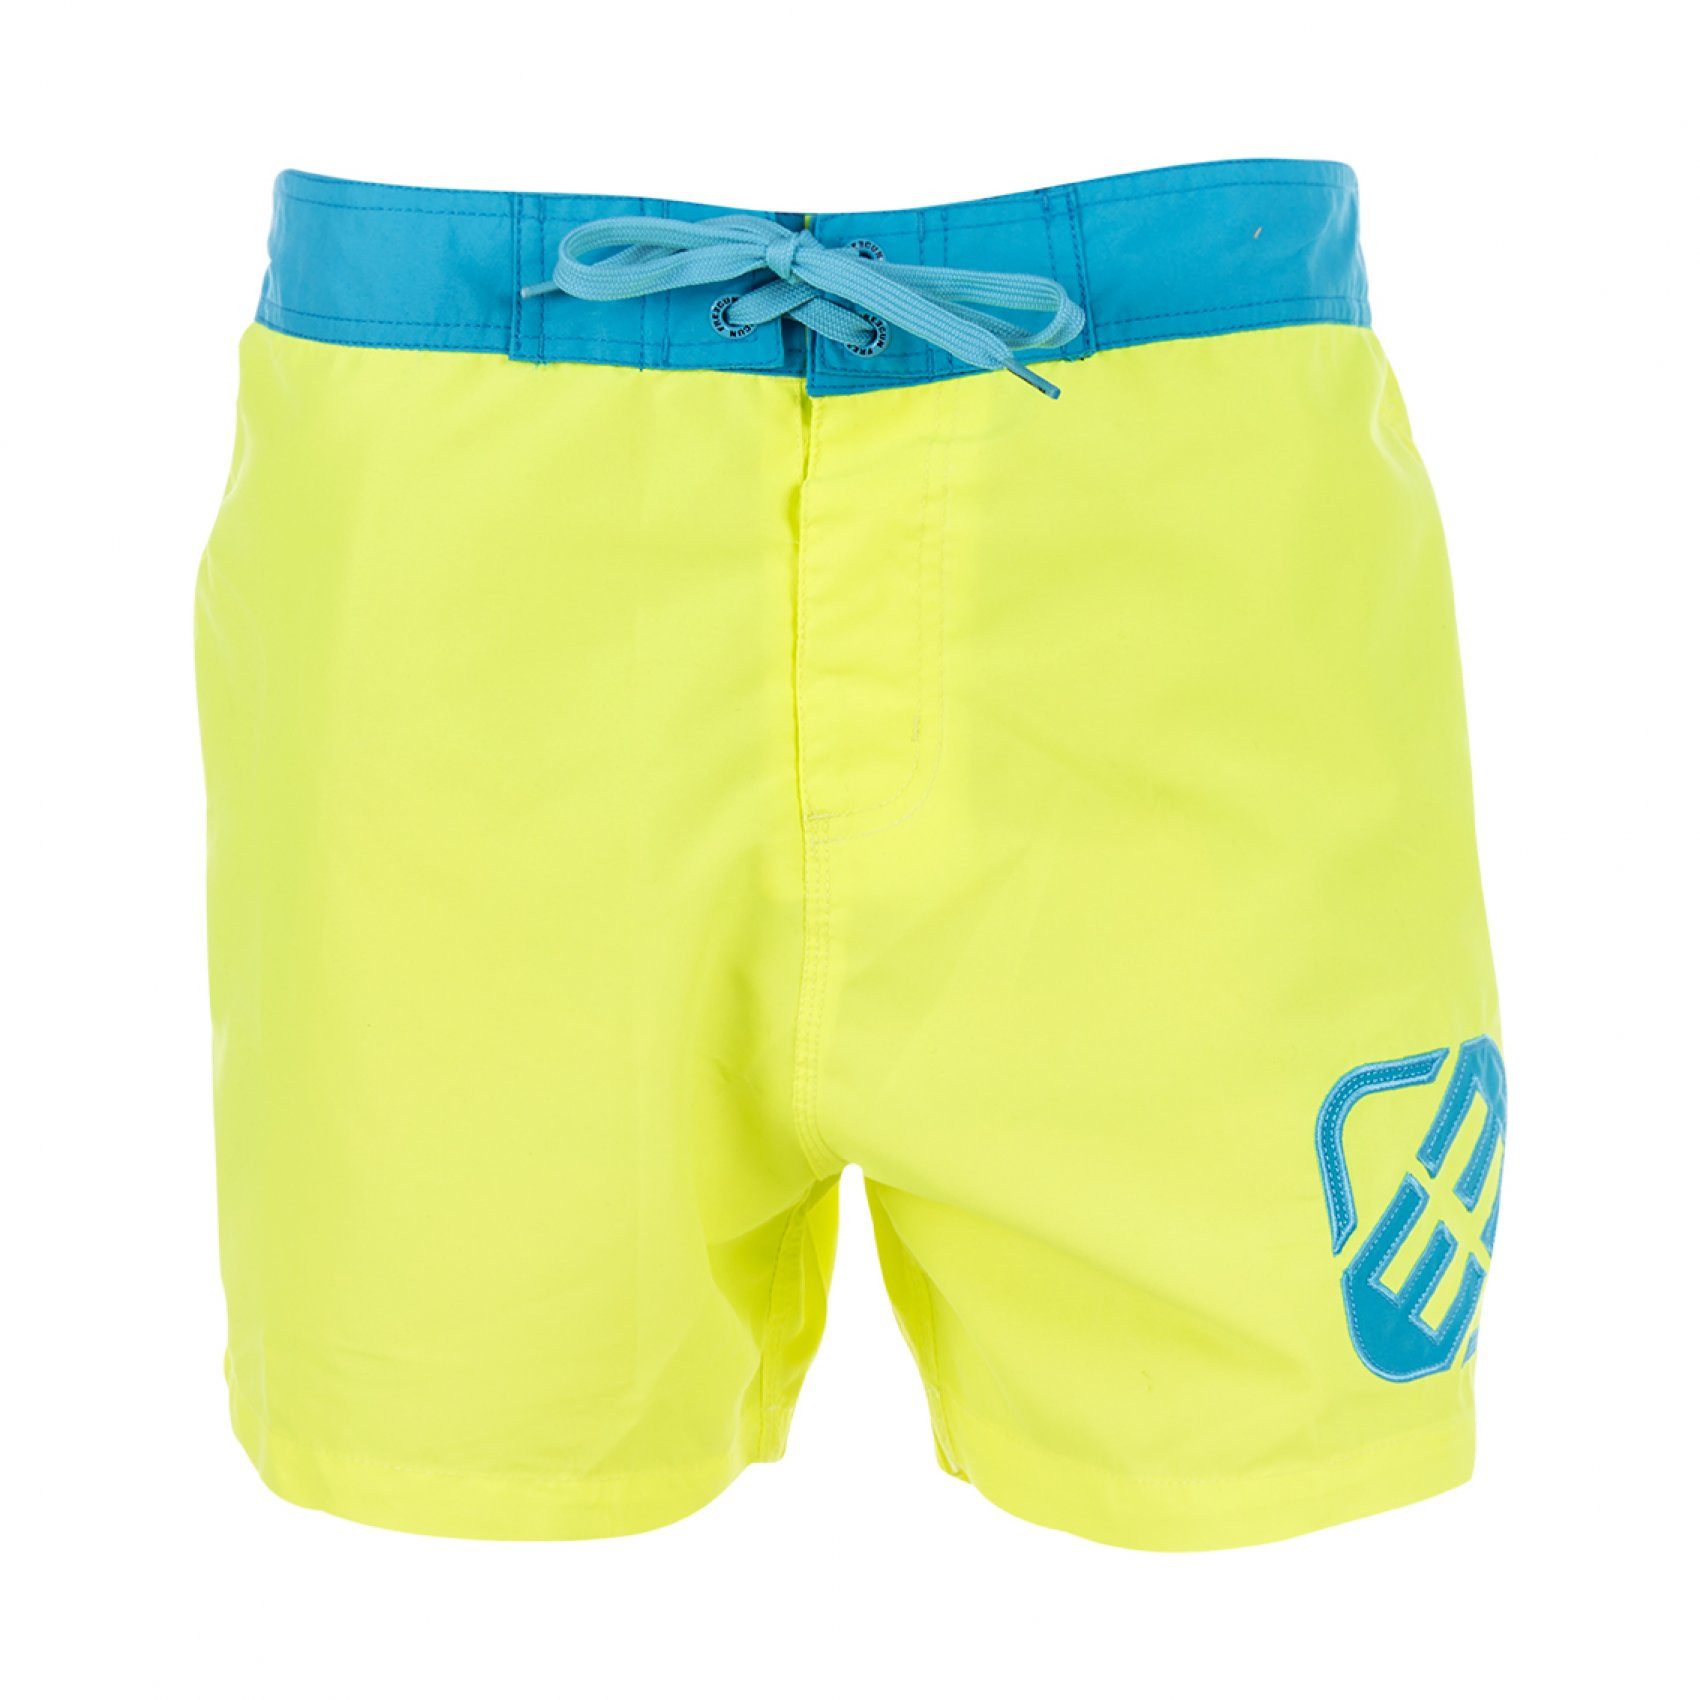 Boardshort court freegun jaune homme (photo)